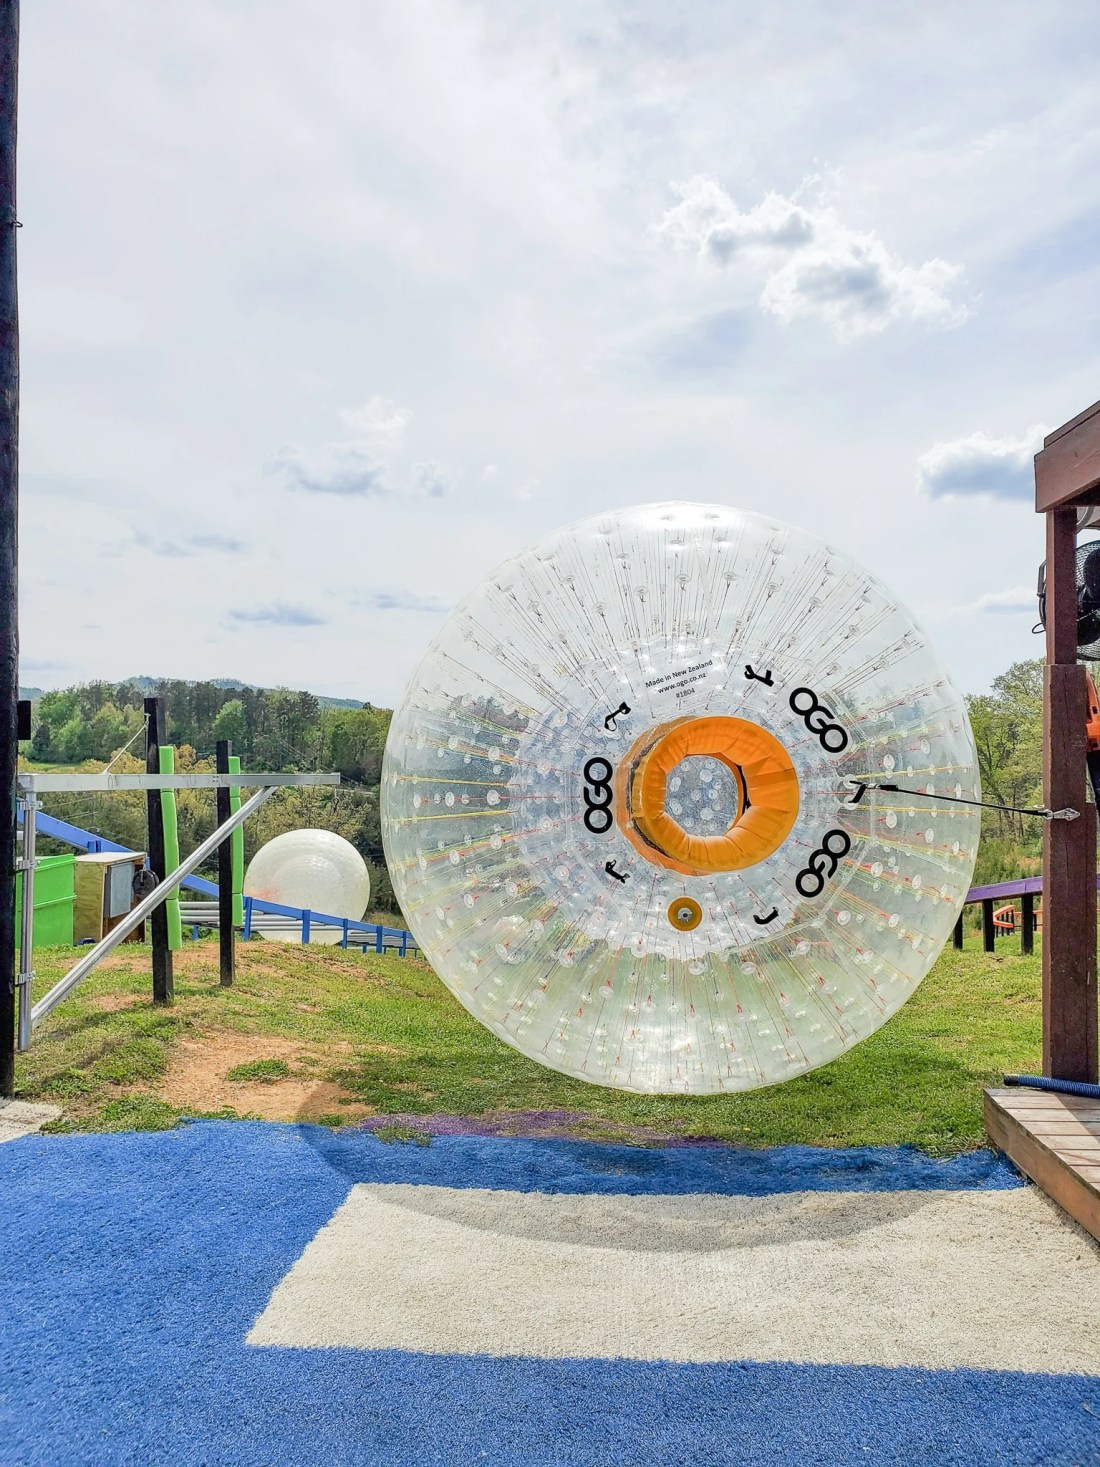 Outdoor Gravity Park Fast Track. Outdoor Gravity Park is an amazing adventure destination in Pigeon Forge, Tennessee at the foothills of the Smoky Mountains featuring zorbing, an attraction straight out of New Zealand.